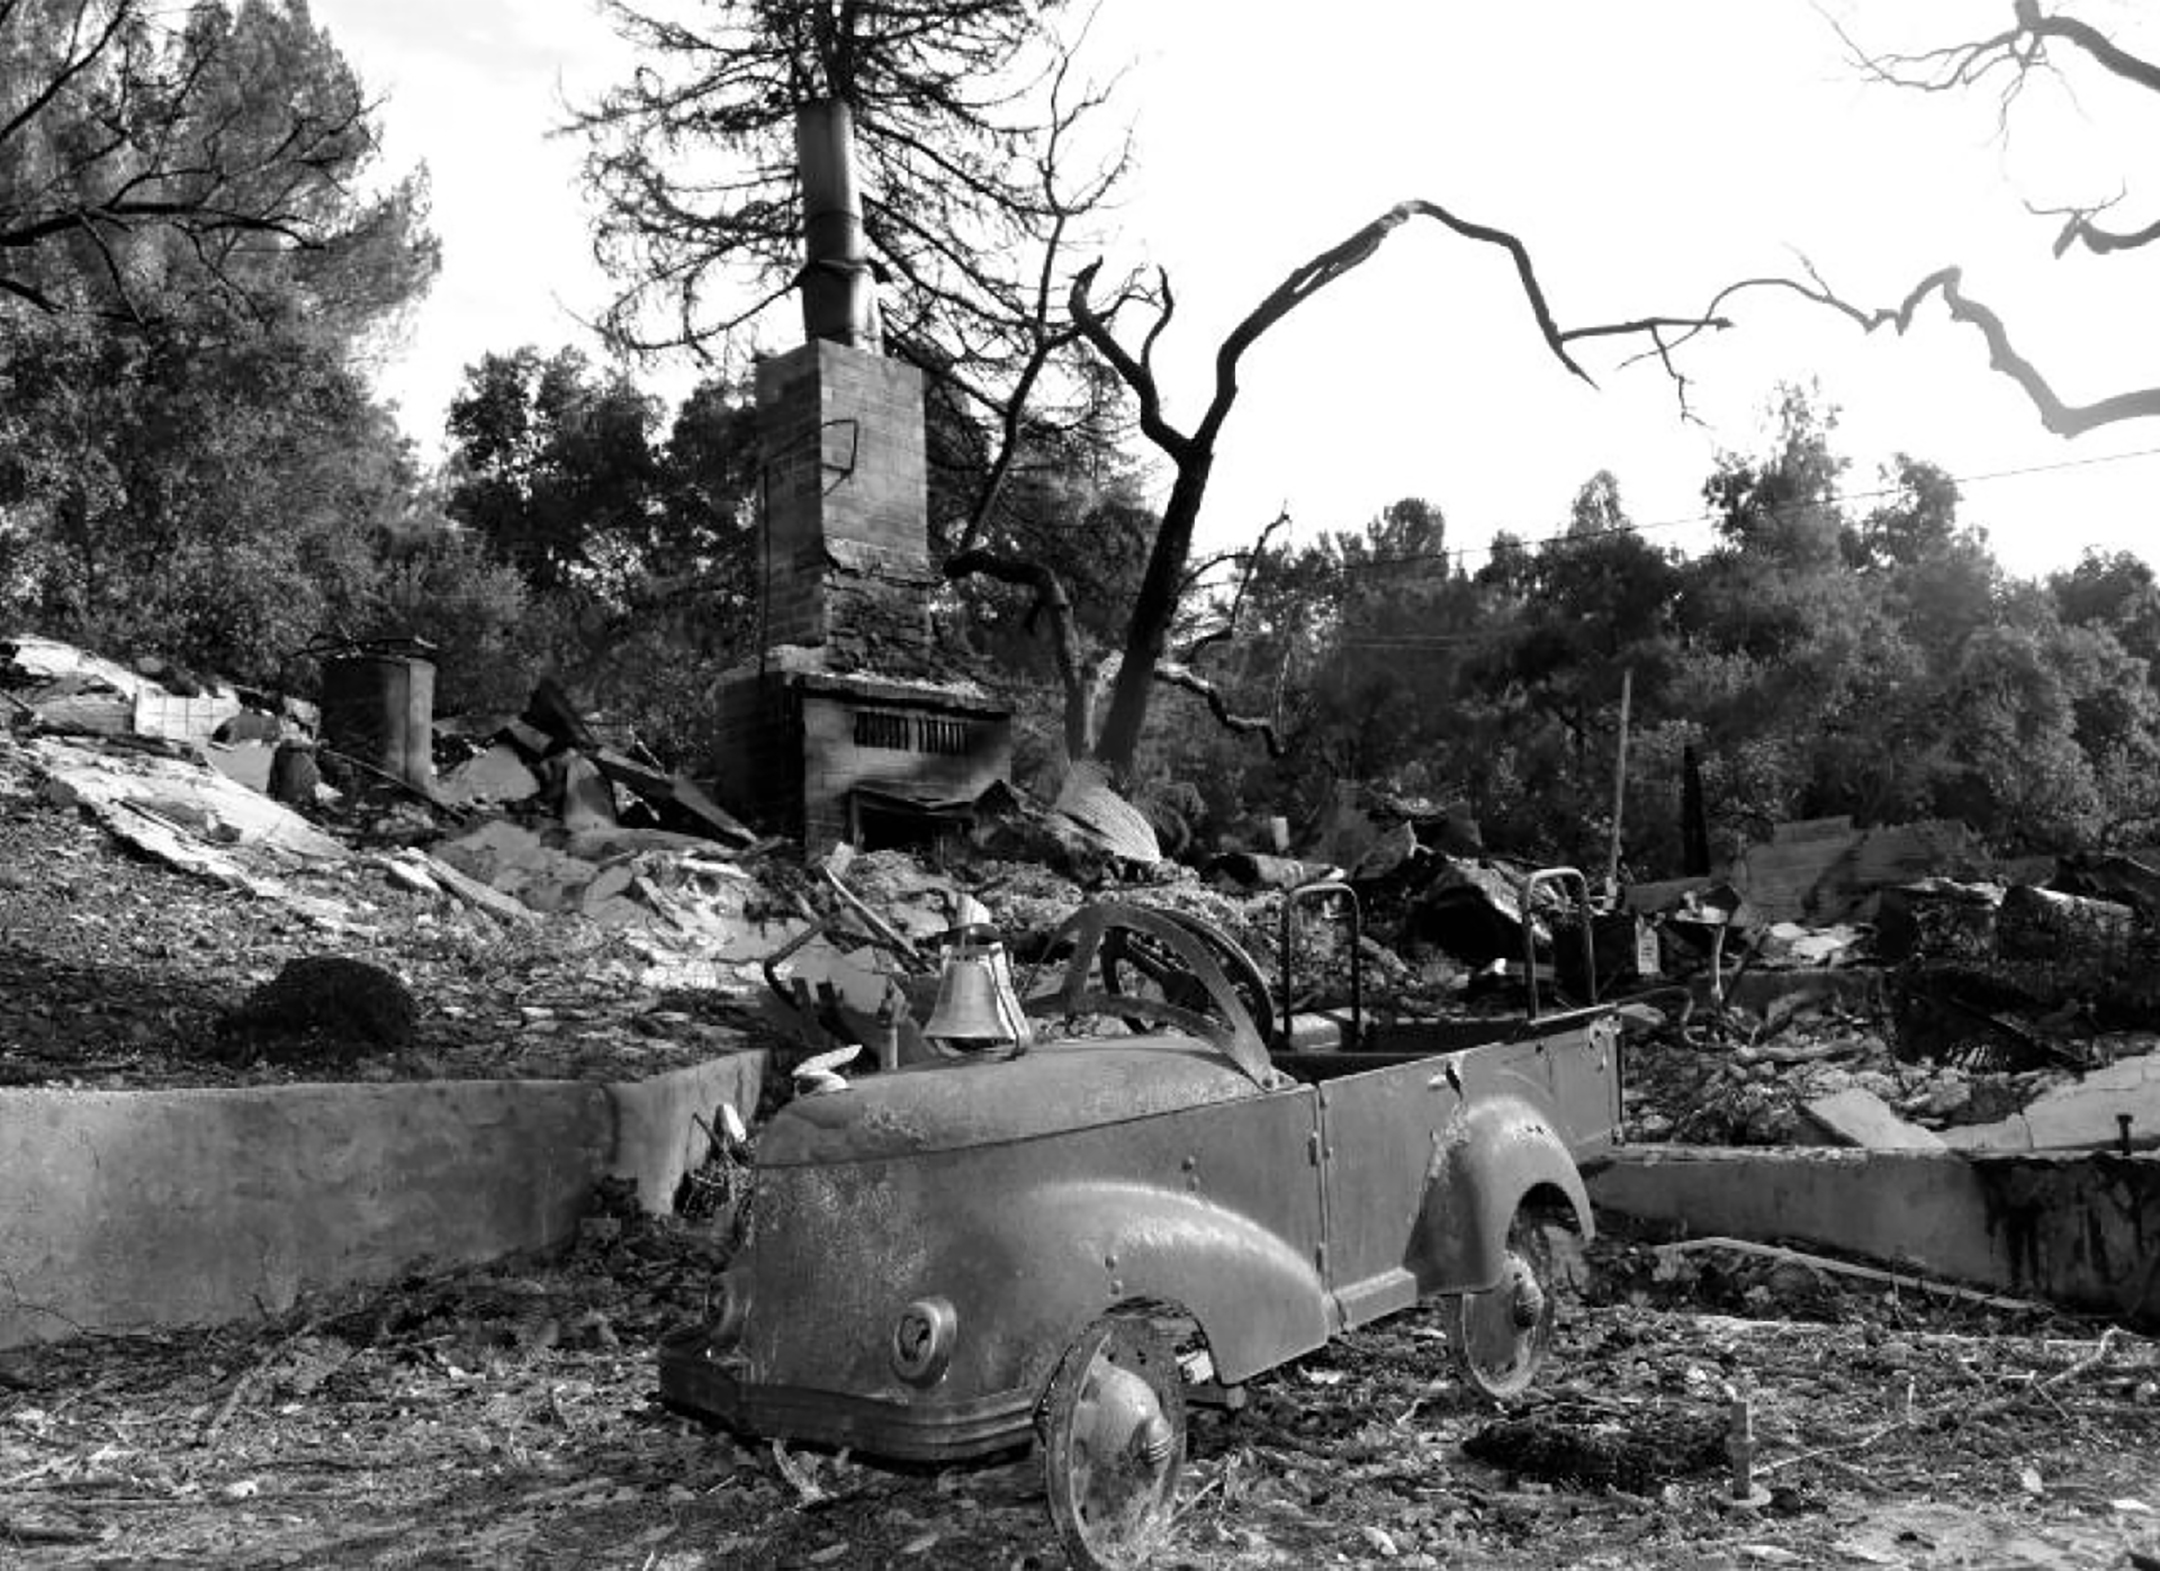 black and white photograph of a burned house and landscape with a damaged child-size car in the center of the frame